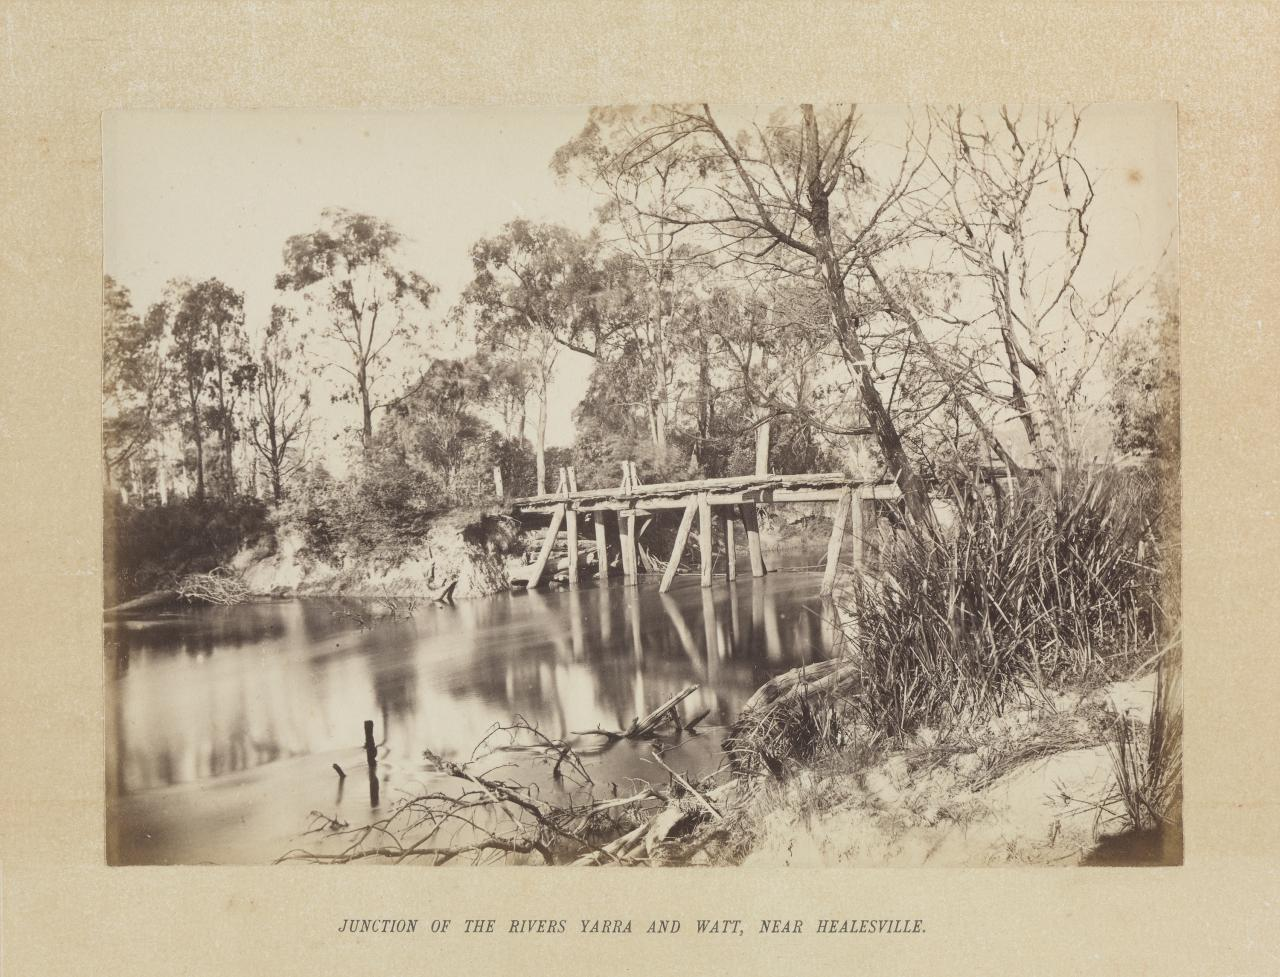 Junction of the Rivers Yarra and Watt, near Healesville